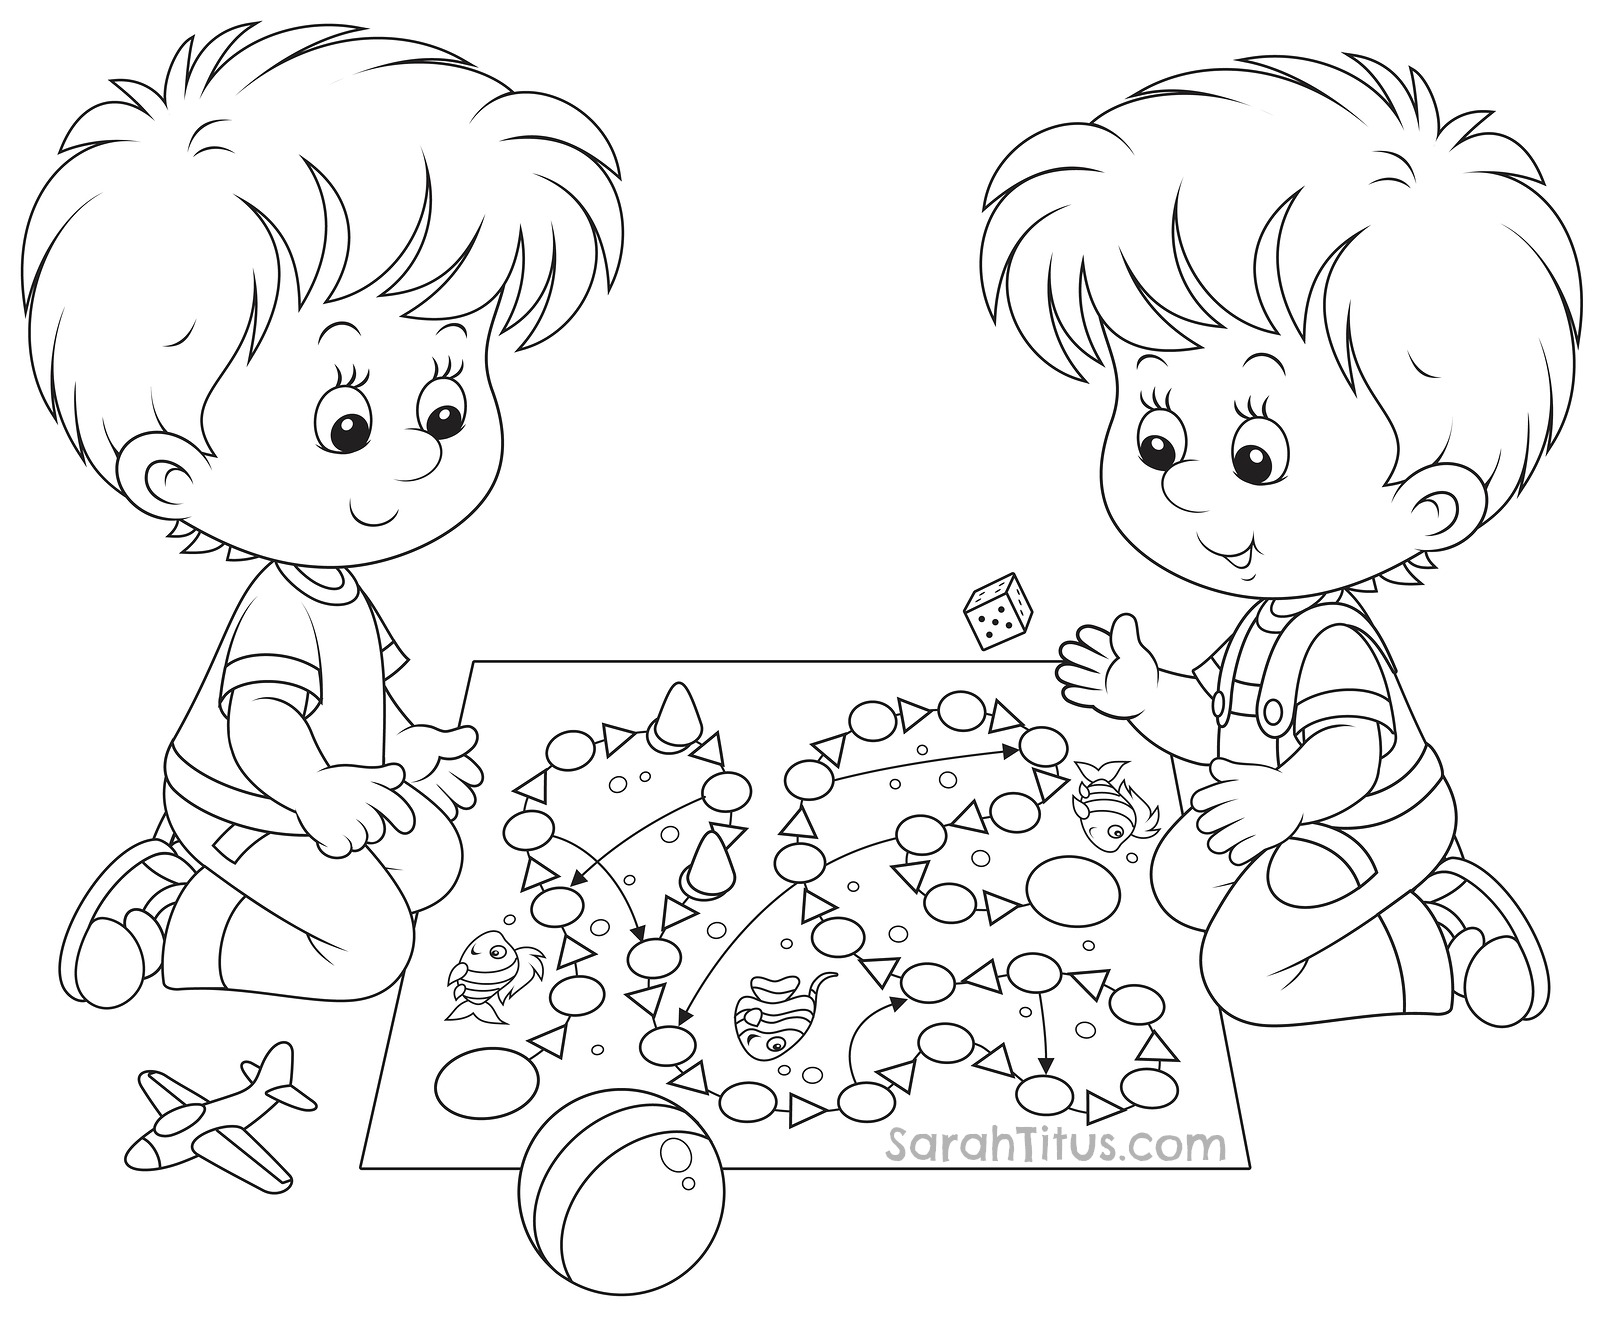 kids game colouring. game coloring pages az coloring pages kids game ...